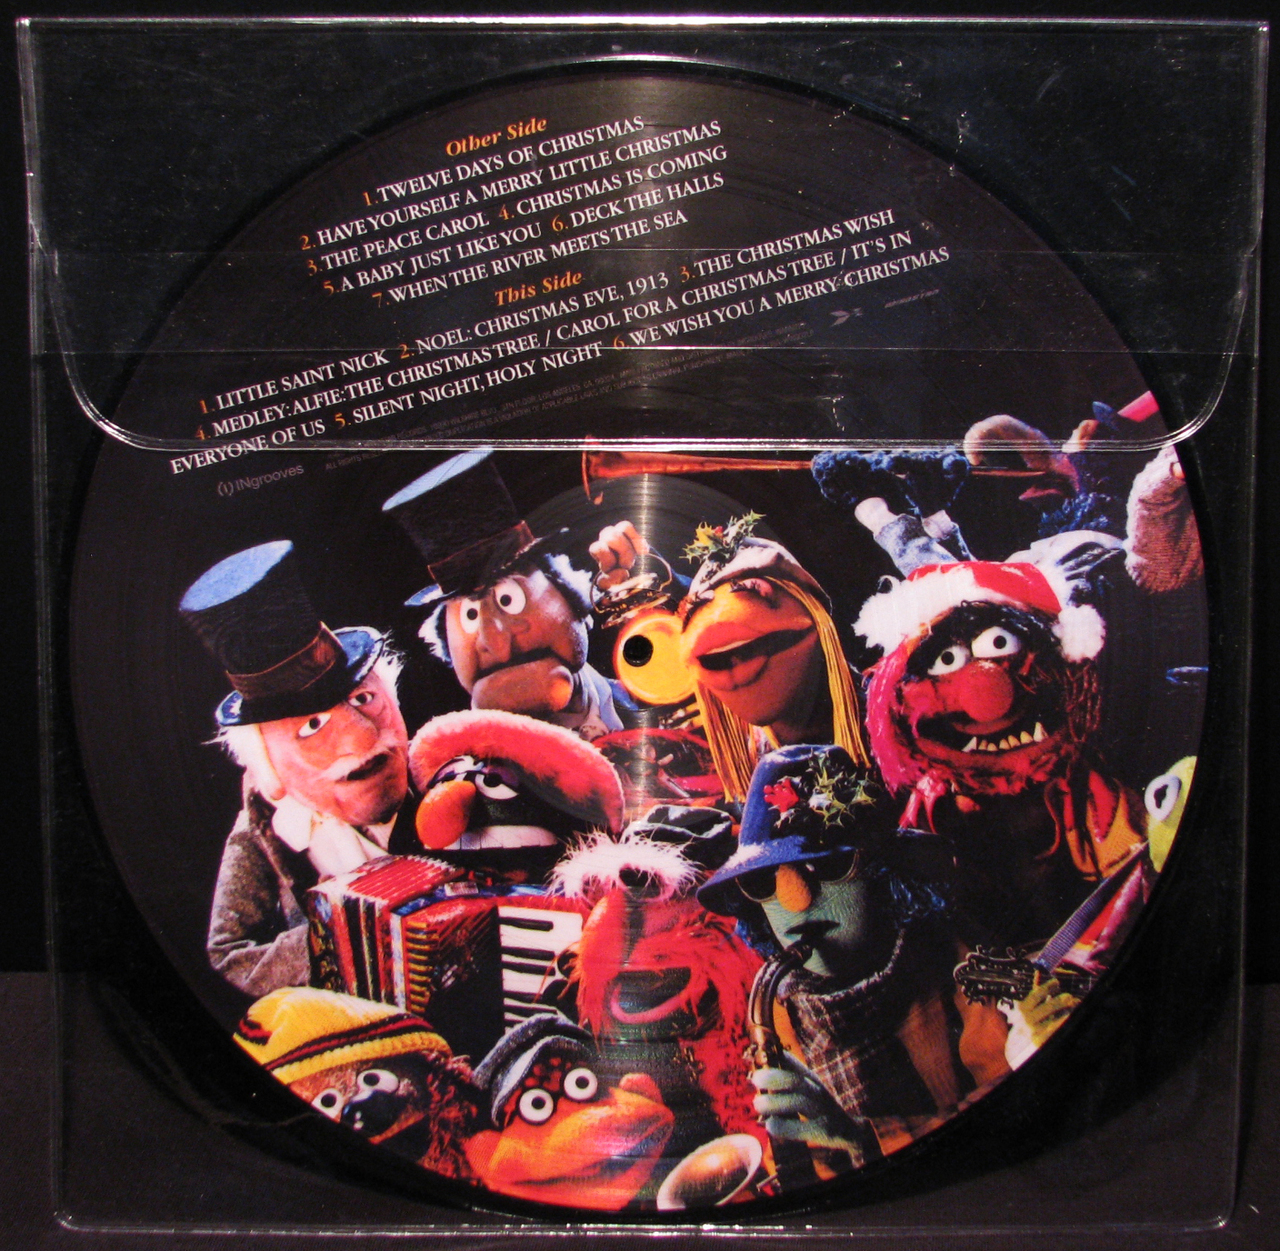 Image - Xmas together 2013 picture disc 02.jpg | Muppet Wiki ...